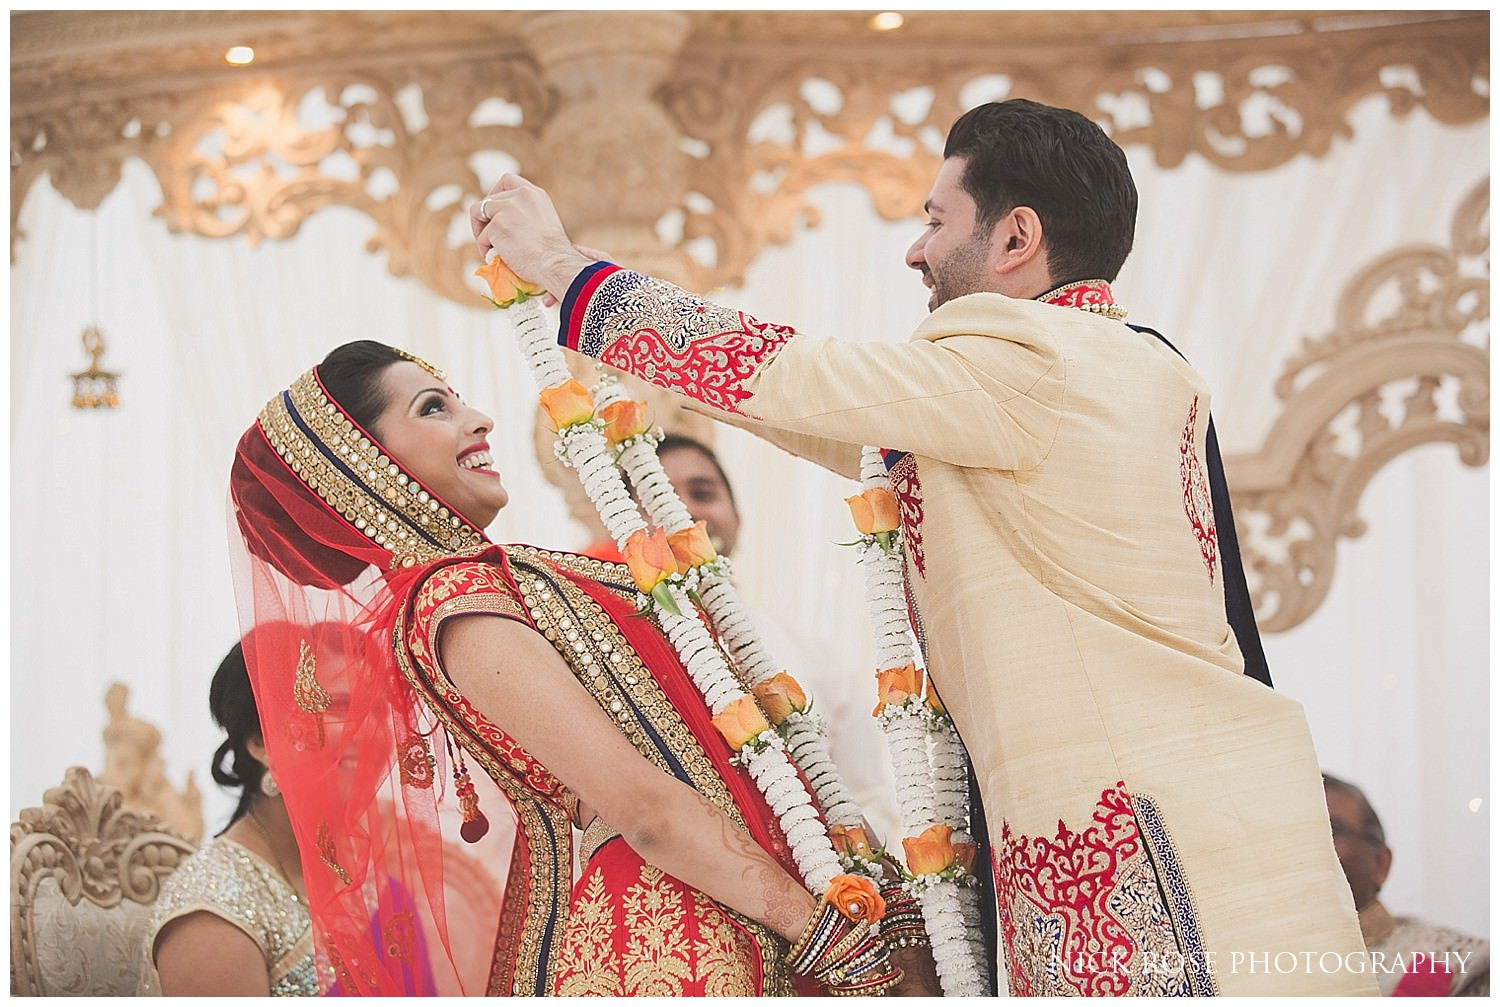 Bride and groom exchanging garlands during an Indian East Wintergarden Hindu wedding in Canary Wharf London